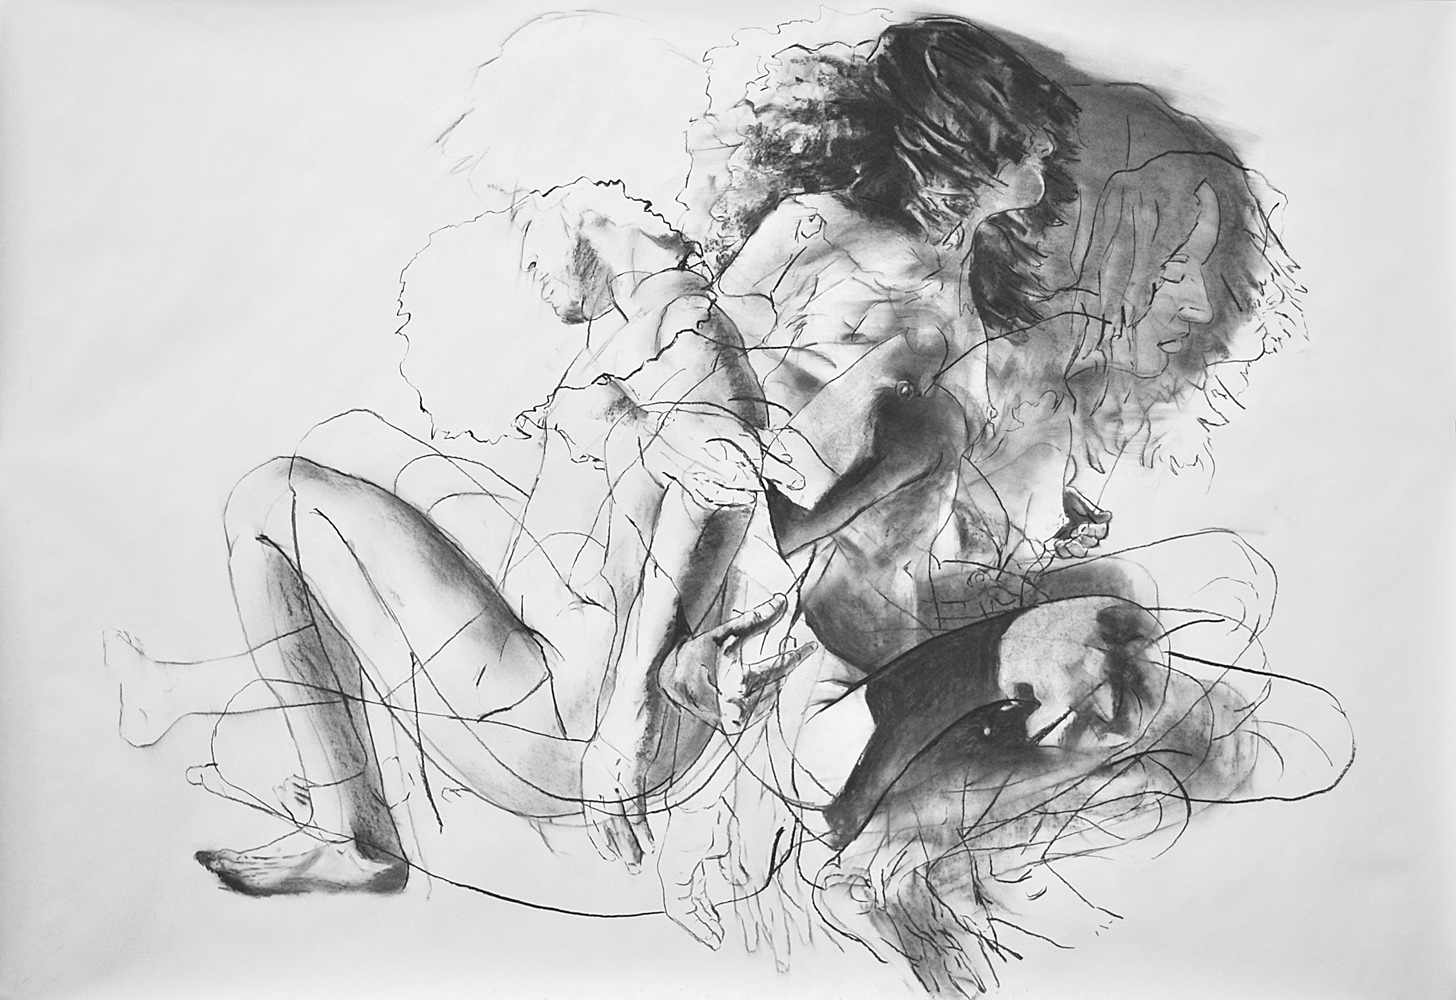 UNTITLED (STUDY), 2013, charcoal on paper, 42 x 60 inches (106.7 x 152.4 cm).